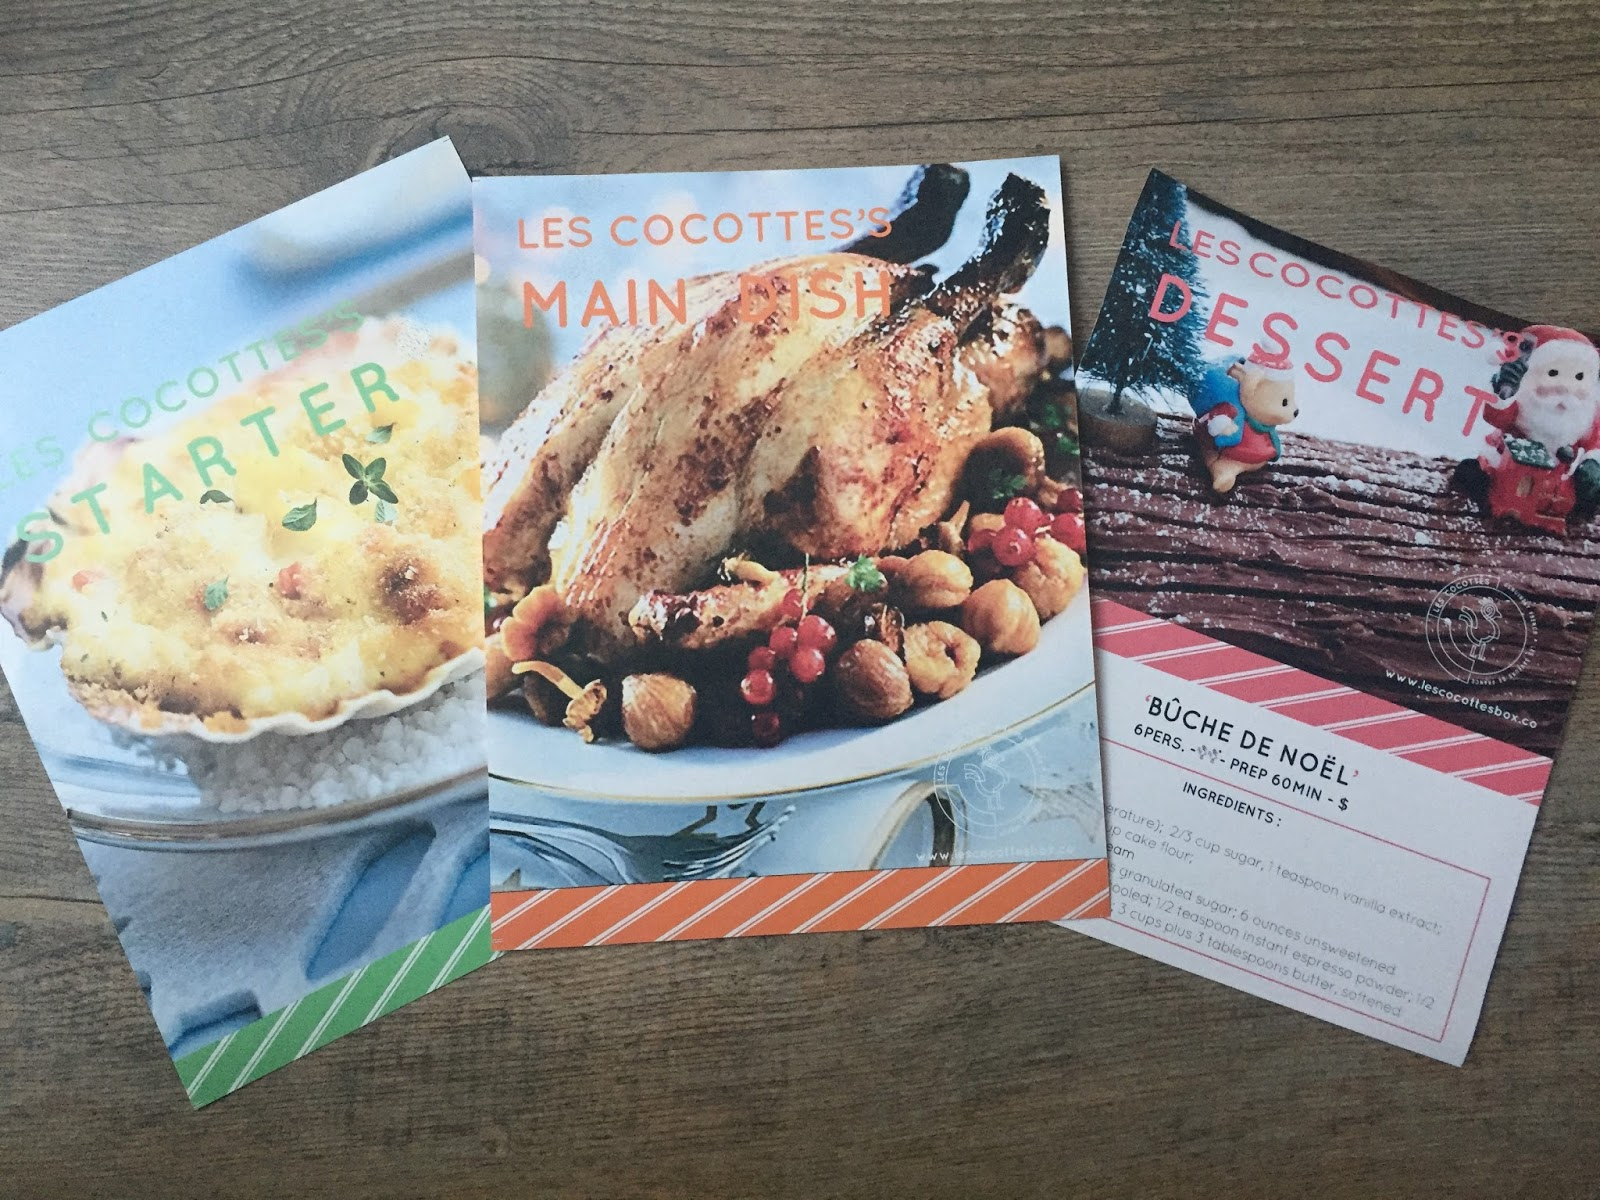 Les cocottes review december 2016 canadian gourmet french food traditional french christmas dinner the recipes include a starter a main dish and a dessert the starter is scallops a la bretonne forumfinder Gallery